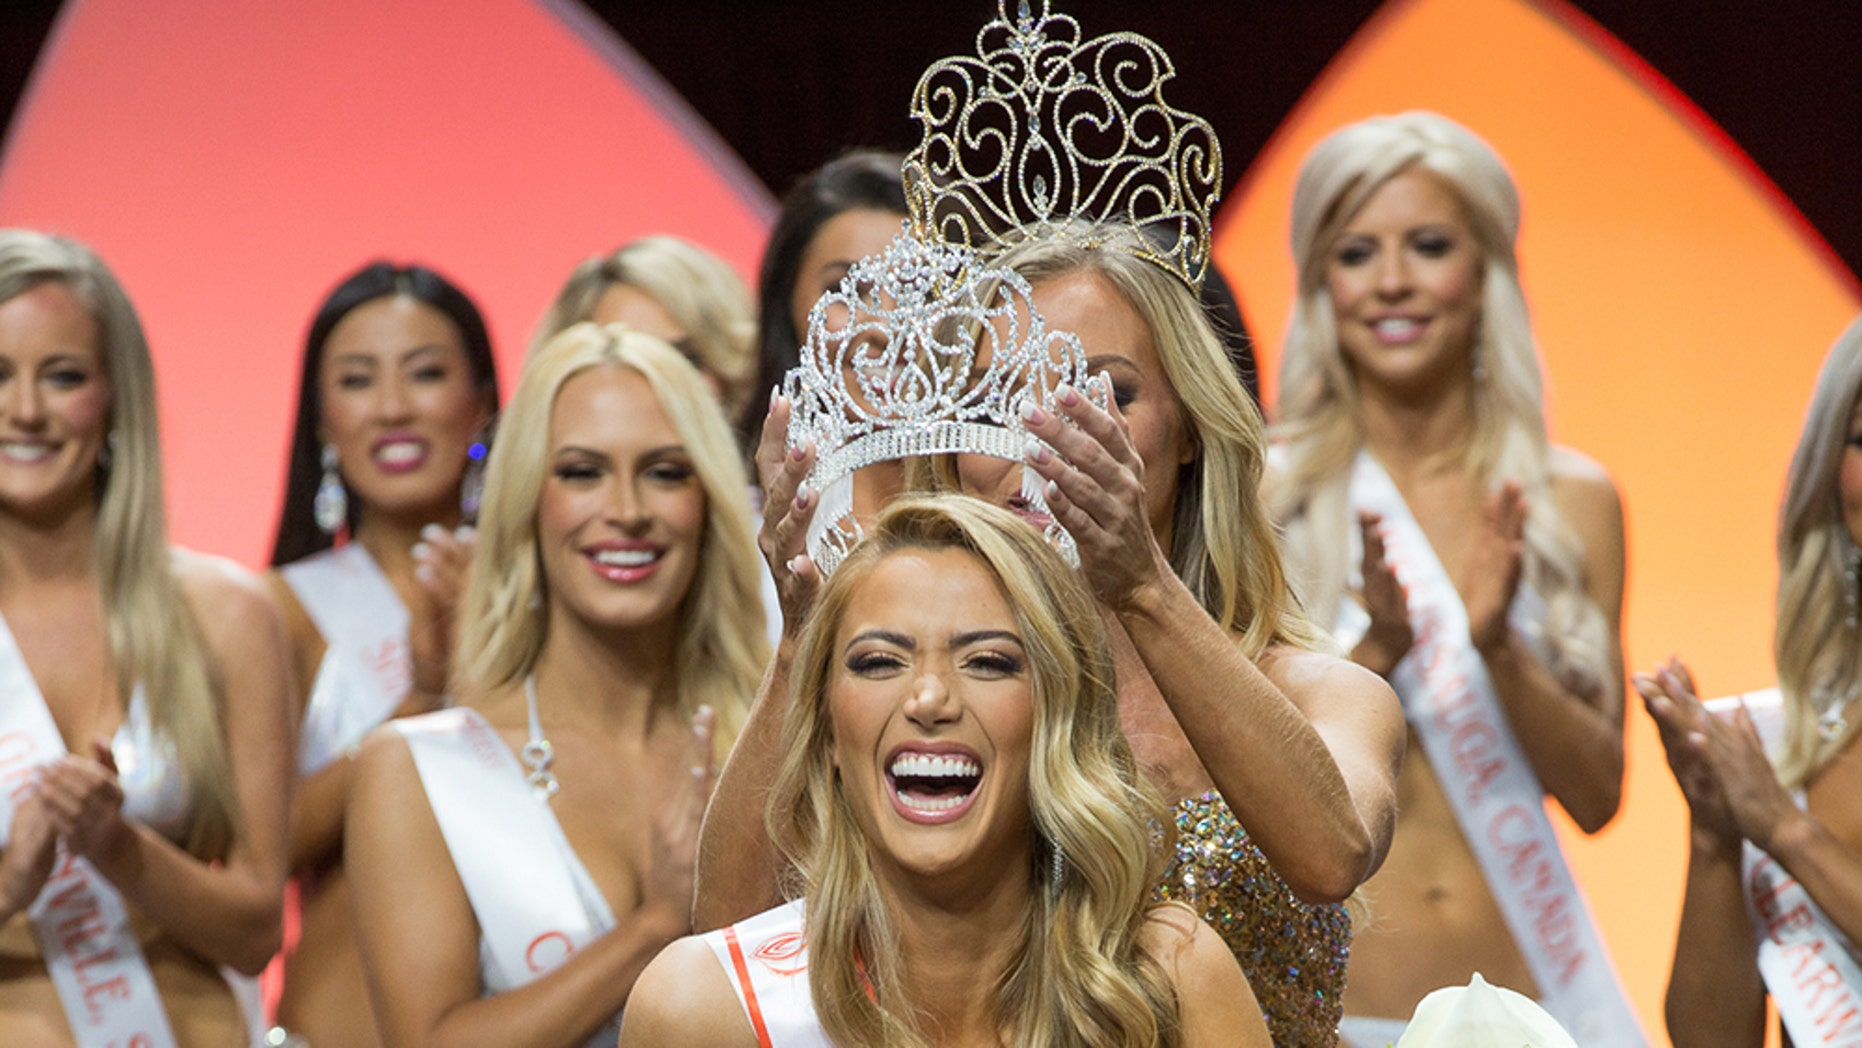 Chelsea Morgensen was crowned 2017 Miss Hooters International